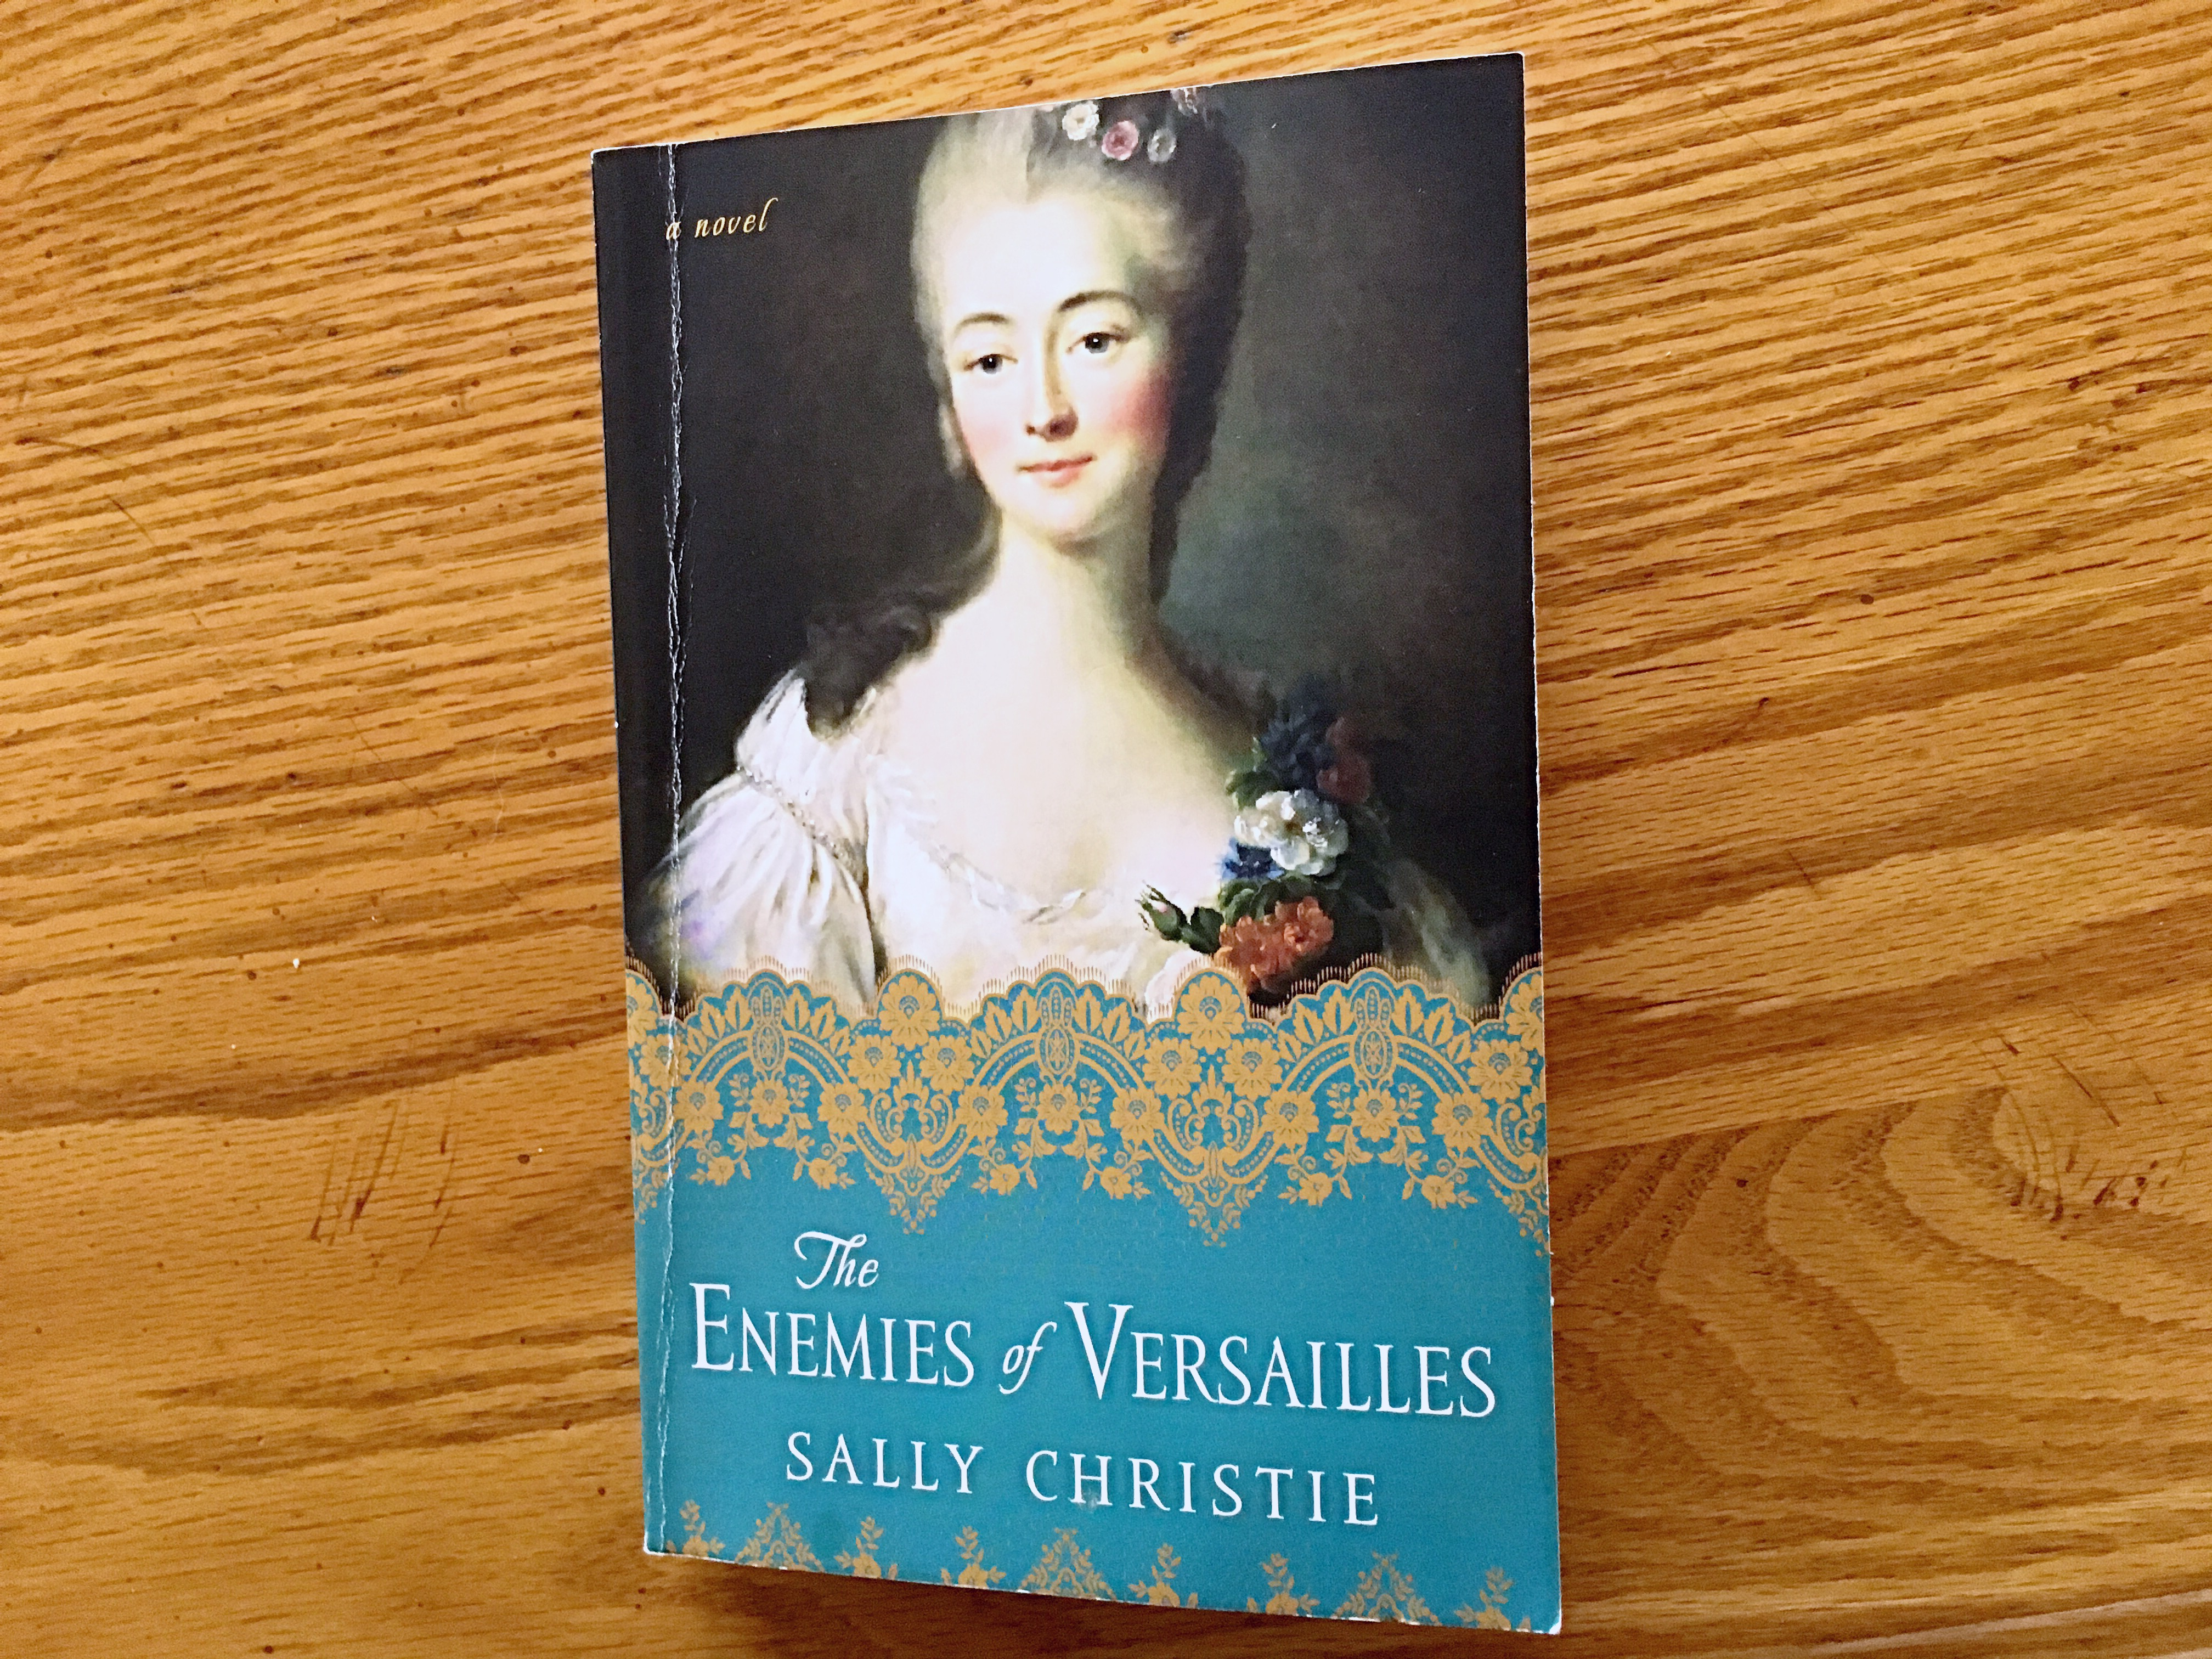 A review of The Enemies of Versailles by Sally Christie, the final installment of The Mistresses of Versailles Trilogy. // Dreams, etc.